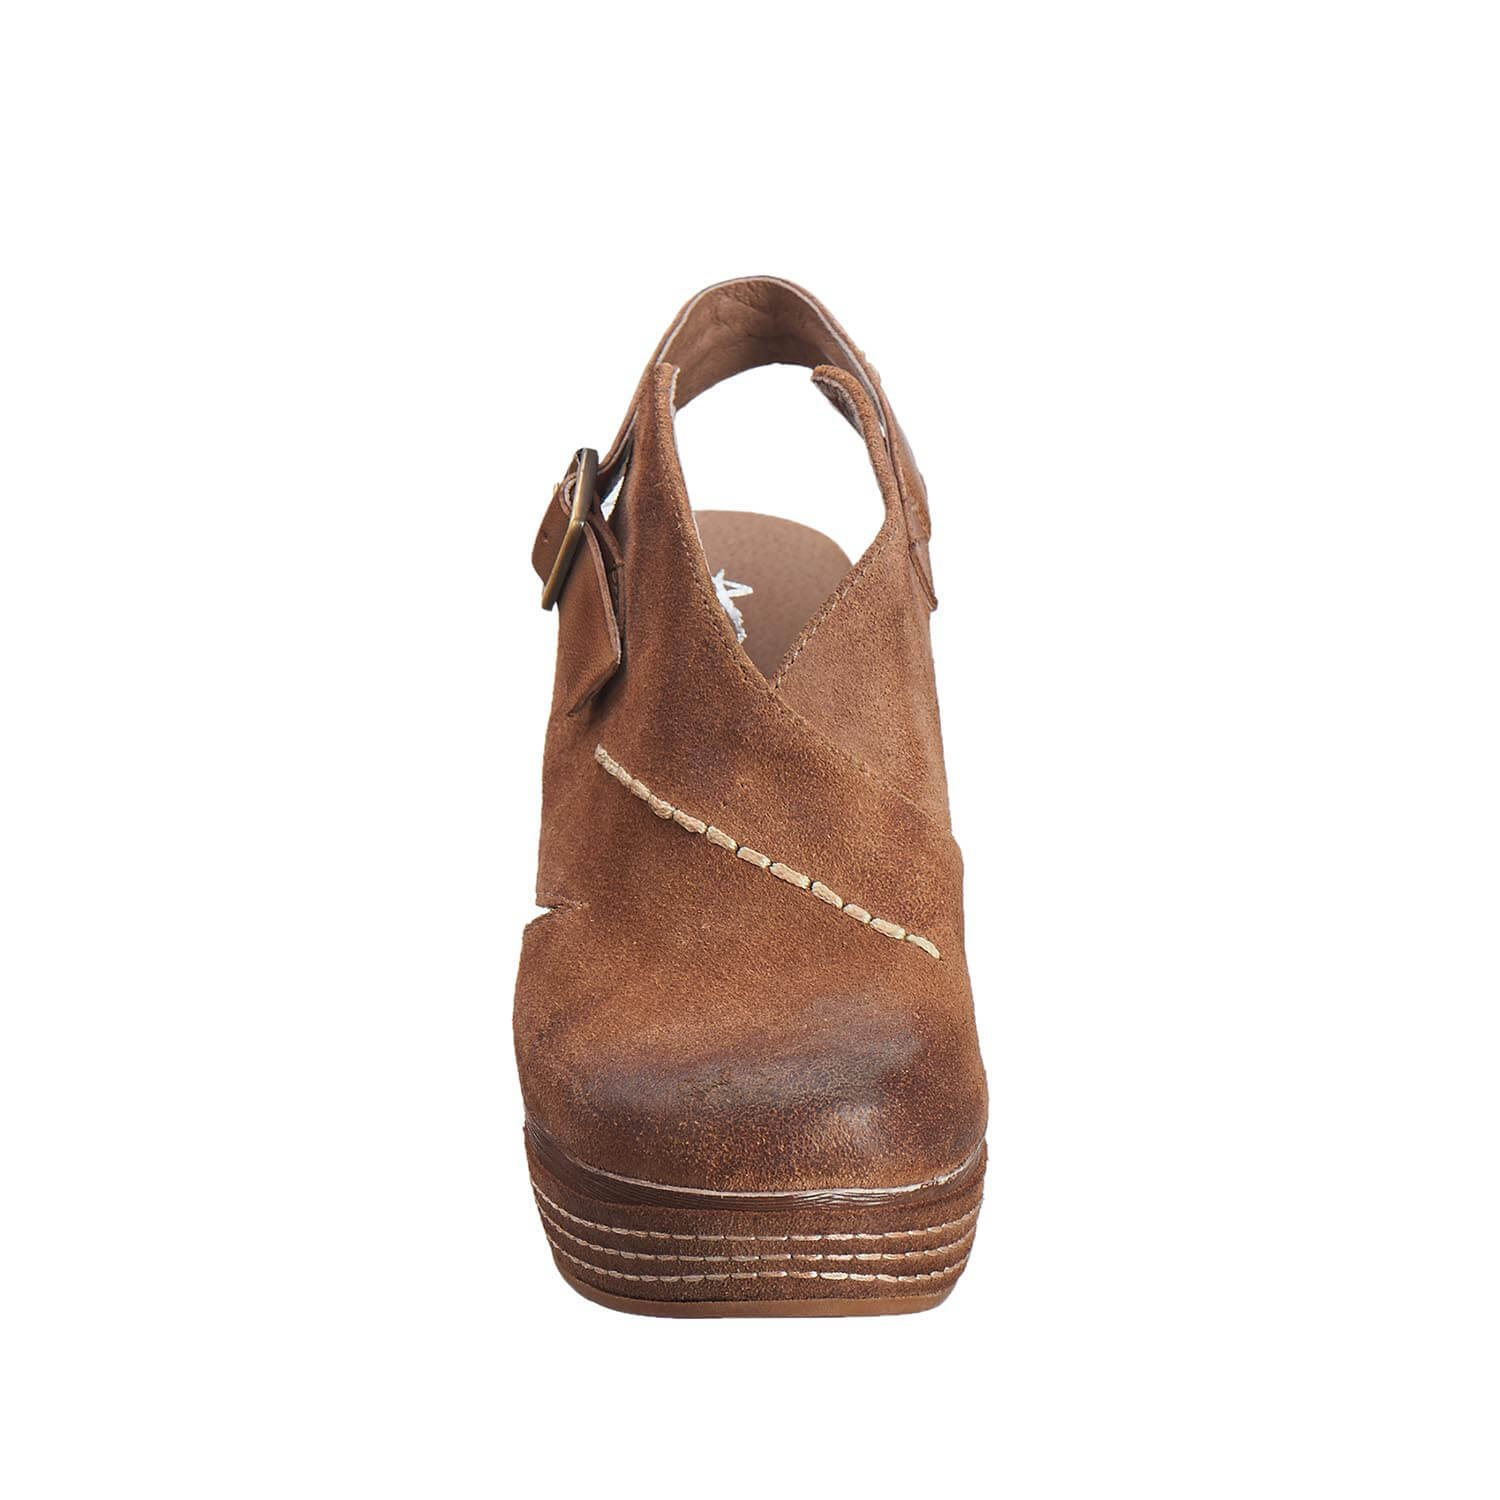 Antelope Women's 836 Taupe Suede Cutout Sling Wedge 38 by Antelope (Image #4)